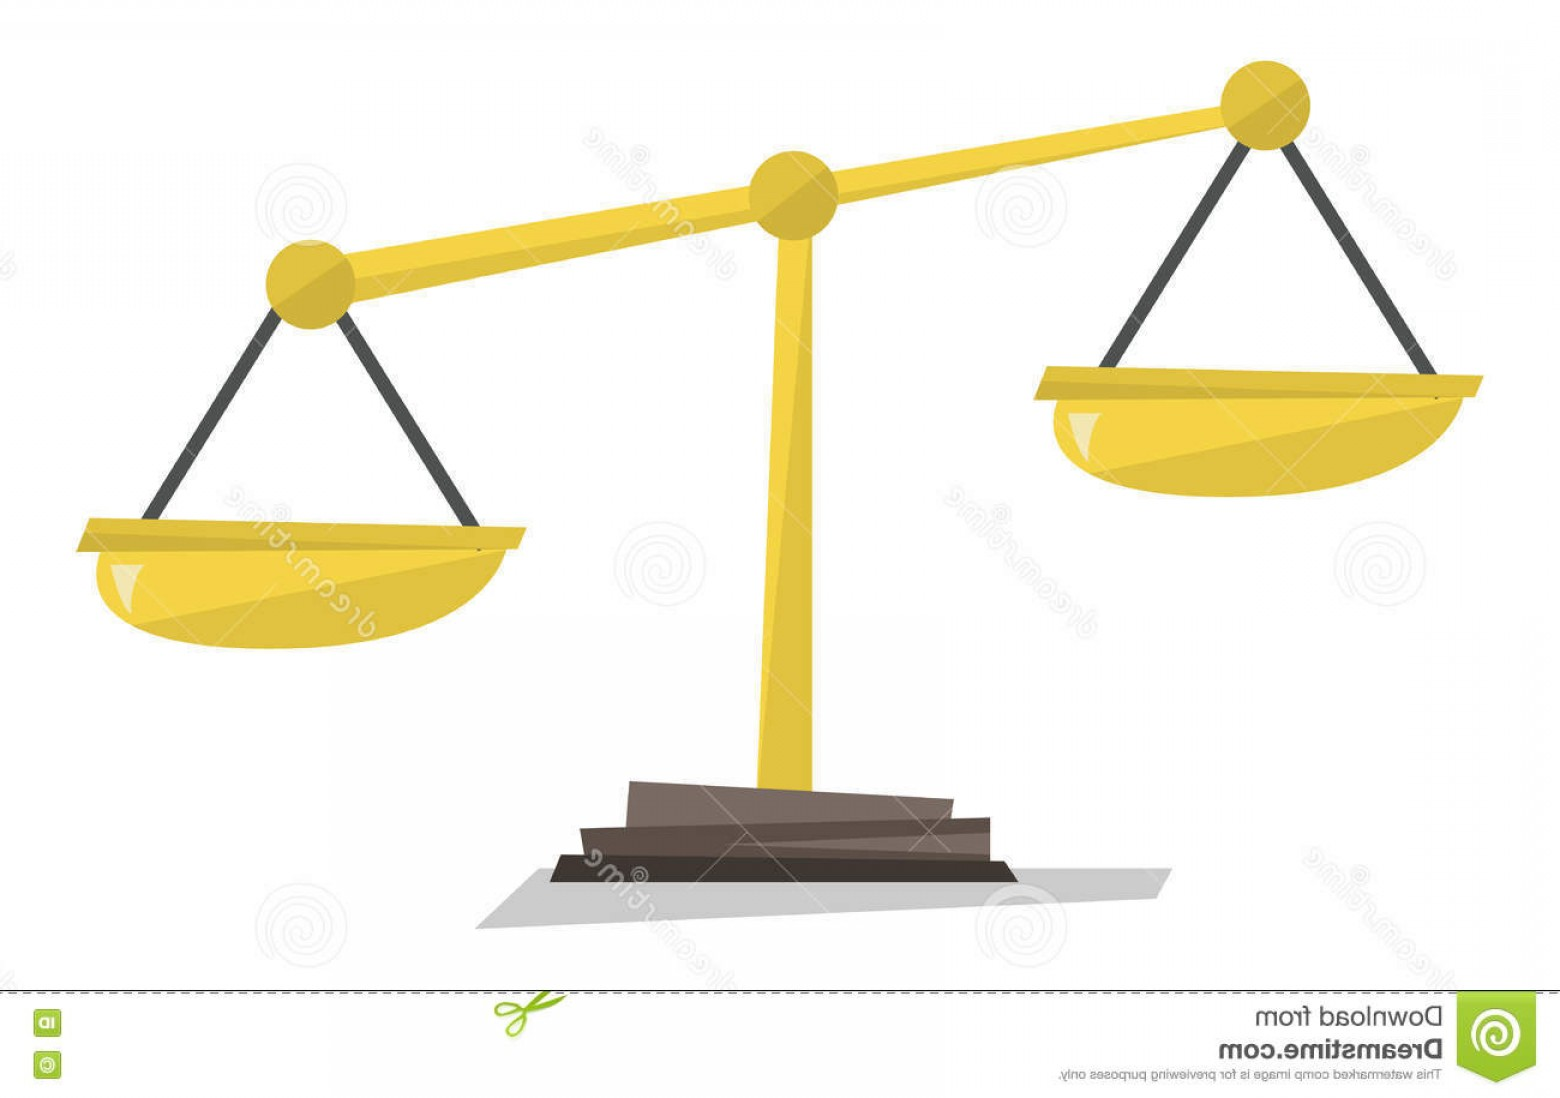 Scales Of Justice Vector: Stock Illustration Gold Scales Justice Vector Illustration Flat Design Isolated White Background Image